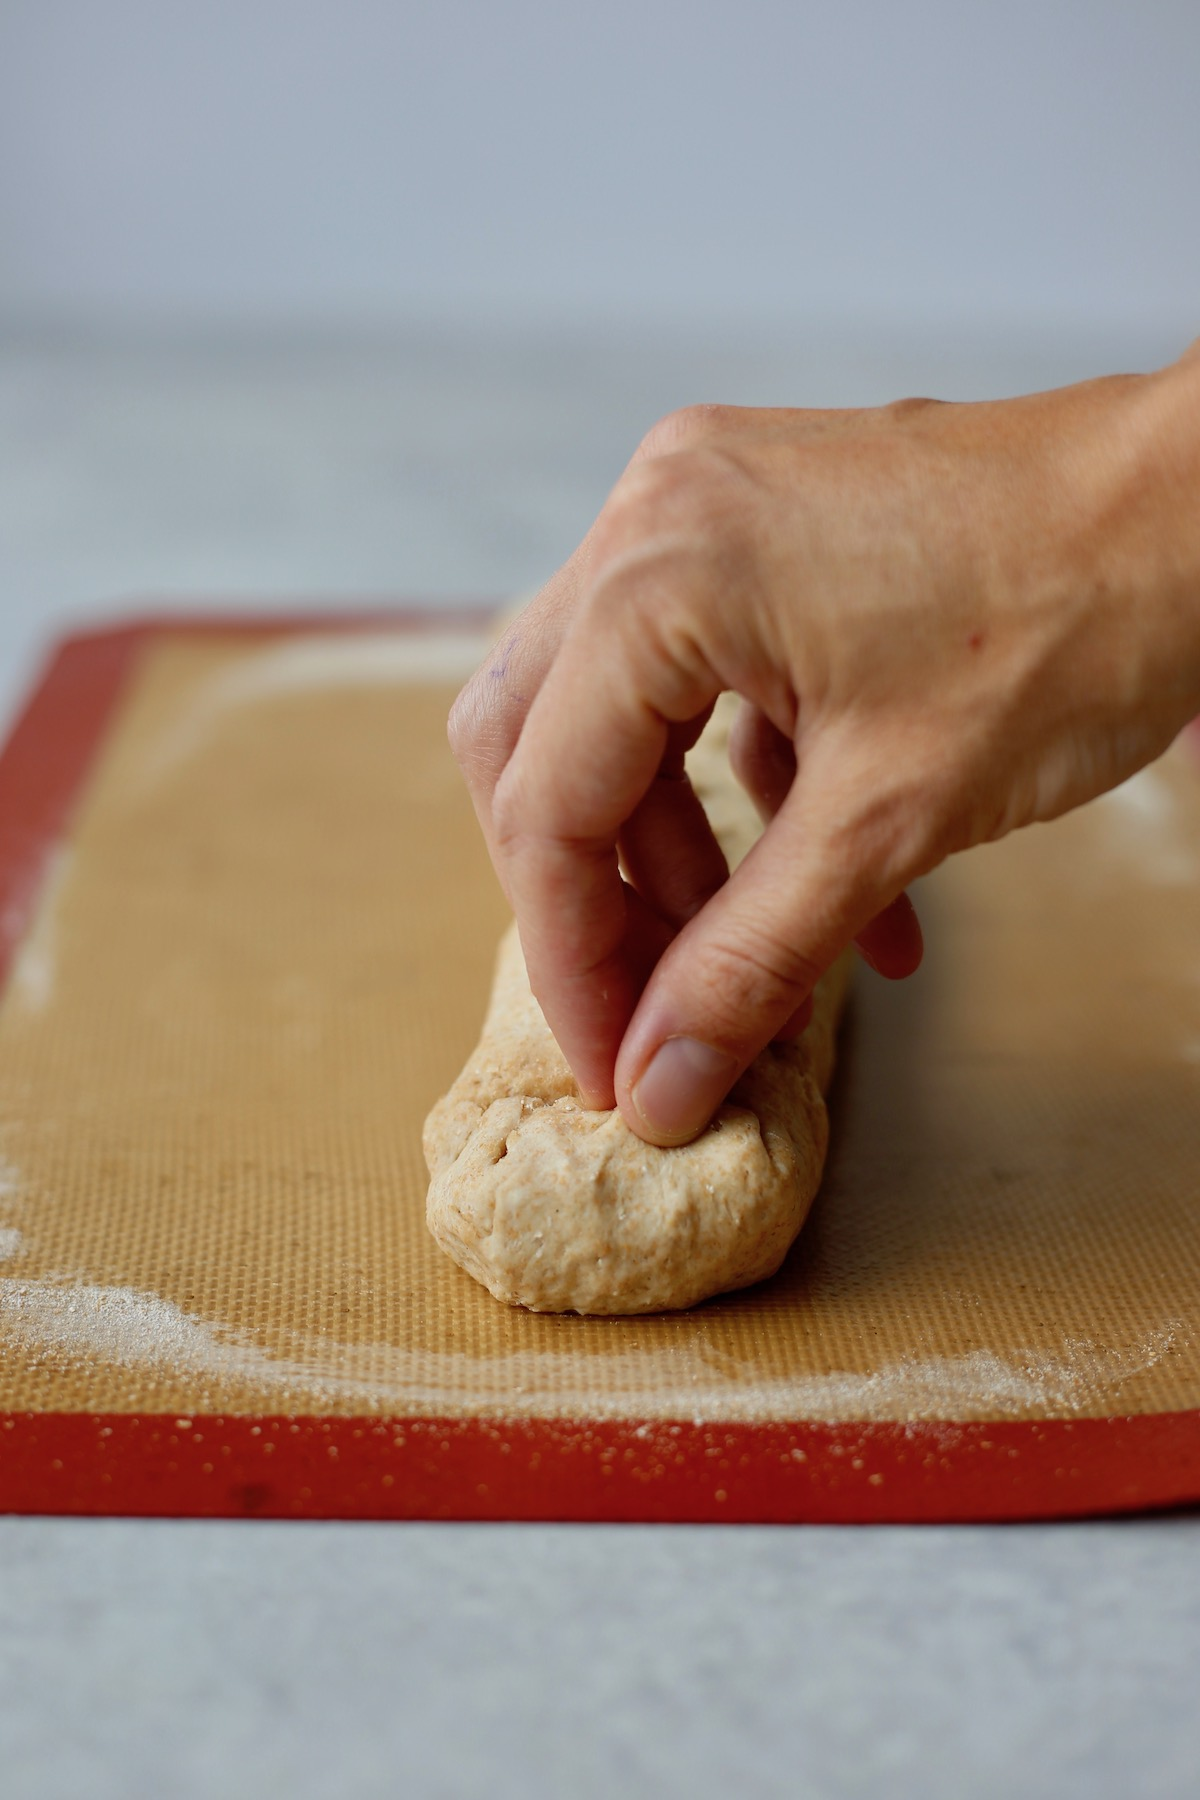 pinch the ends of the dough roll